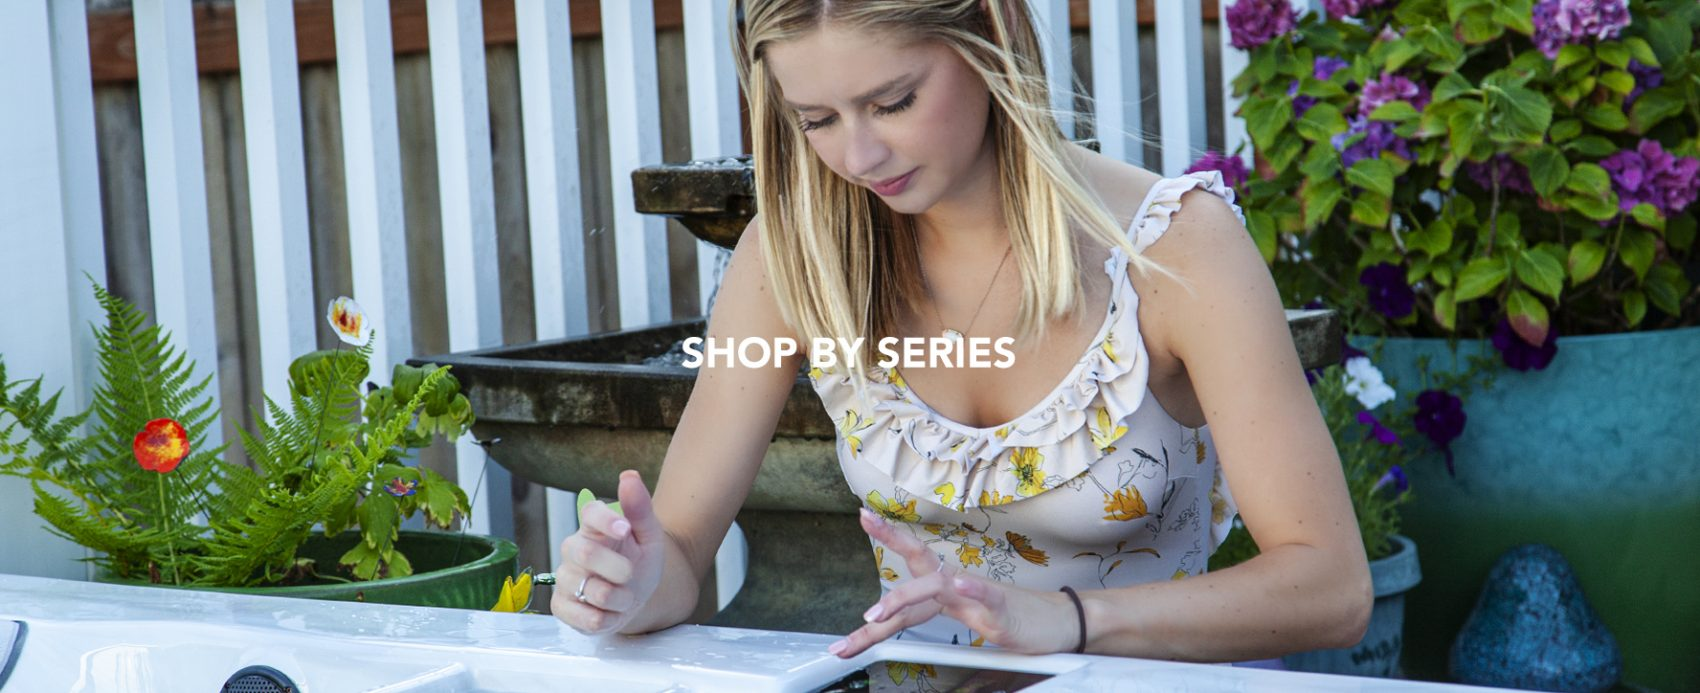 Shop By Series